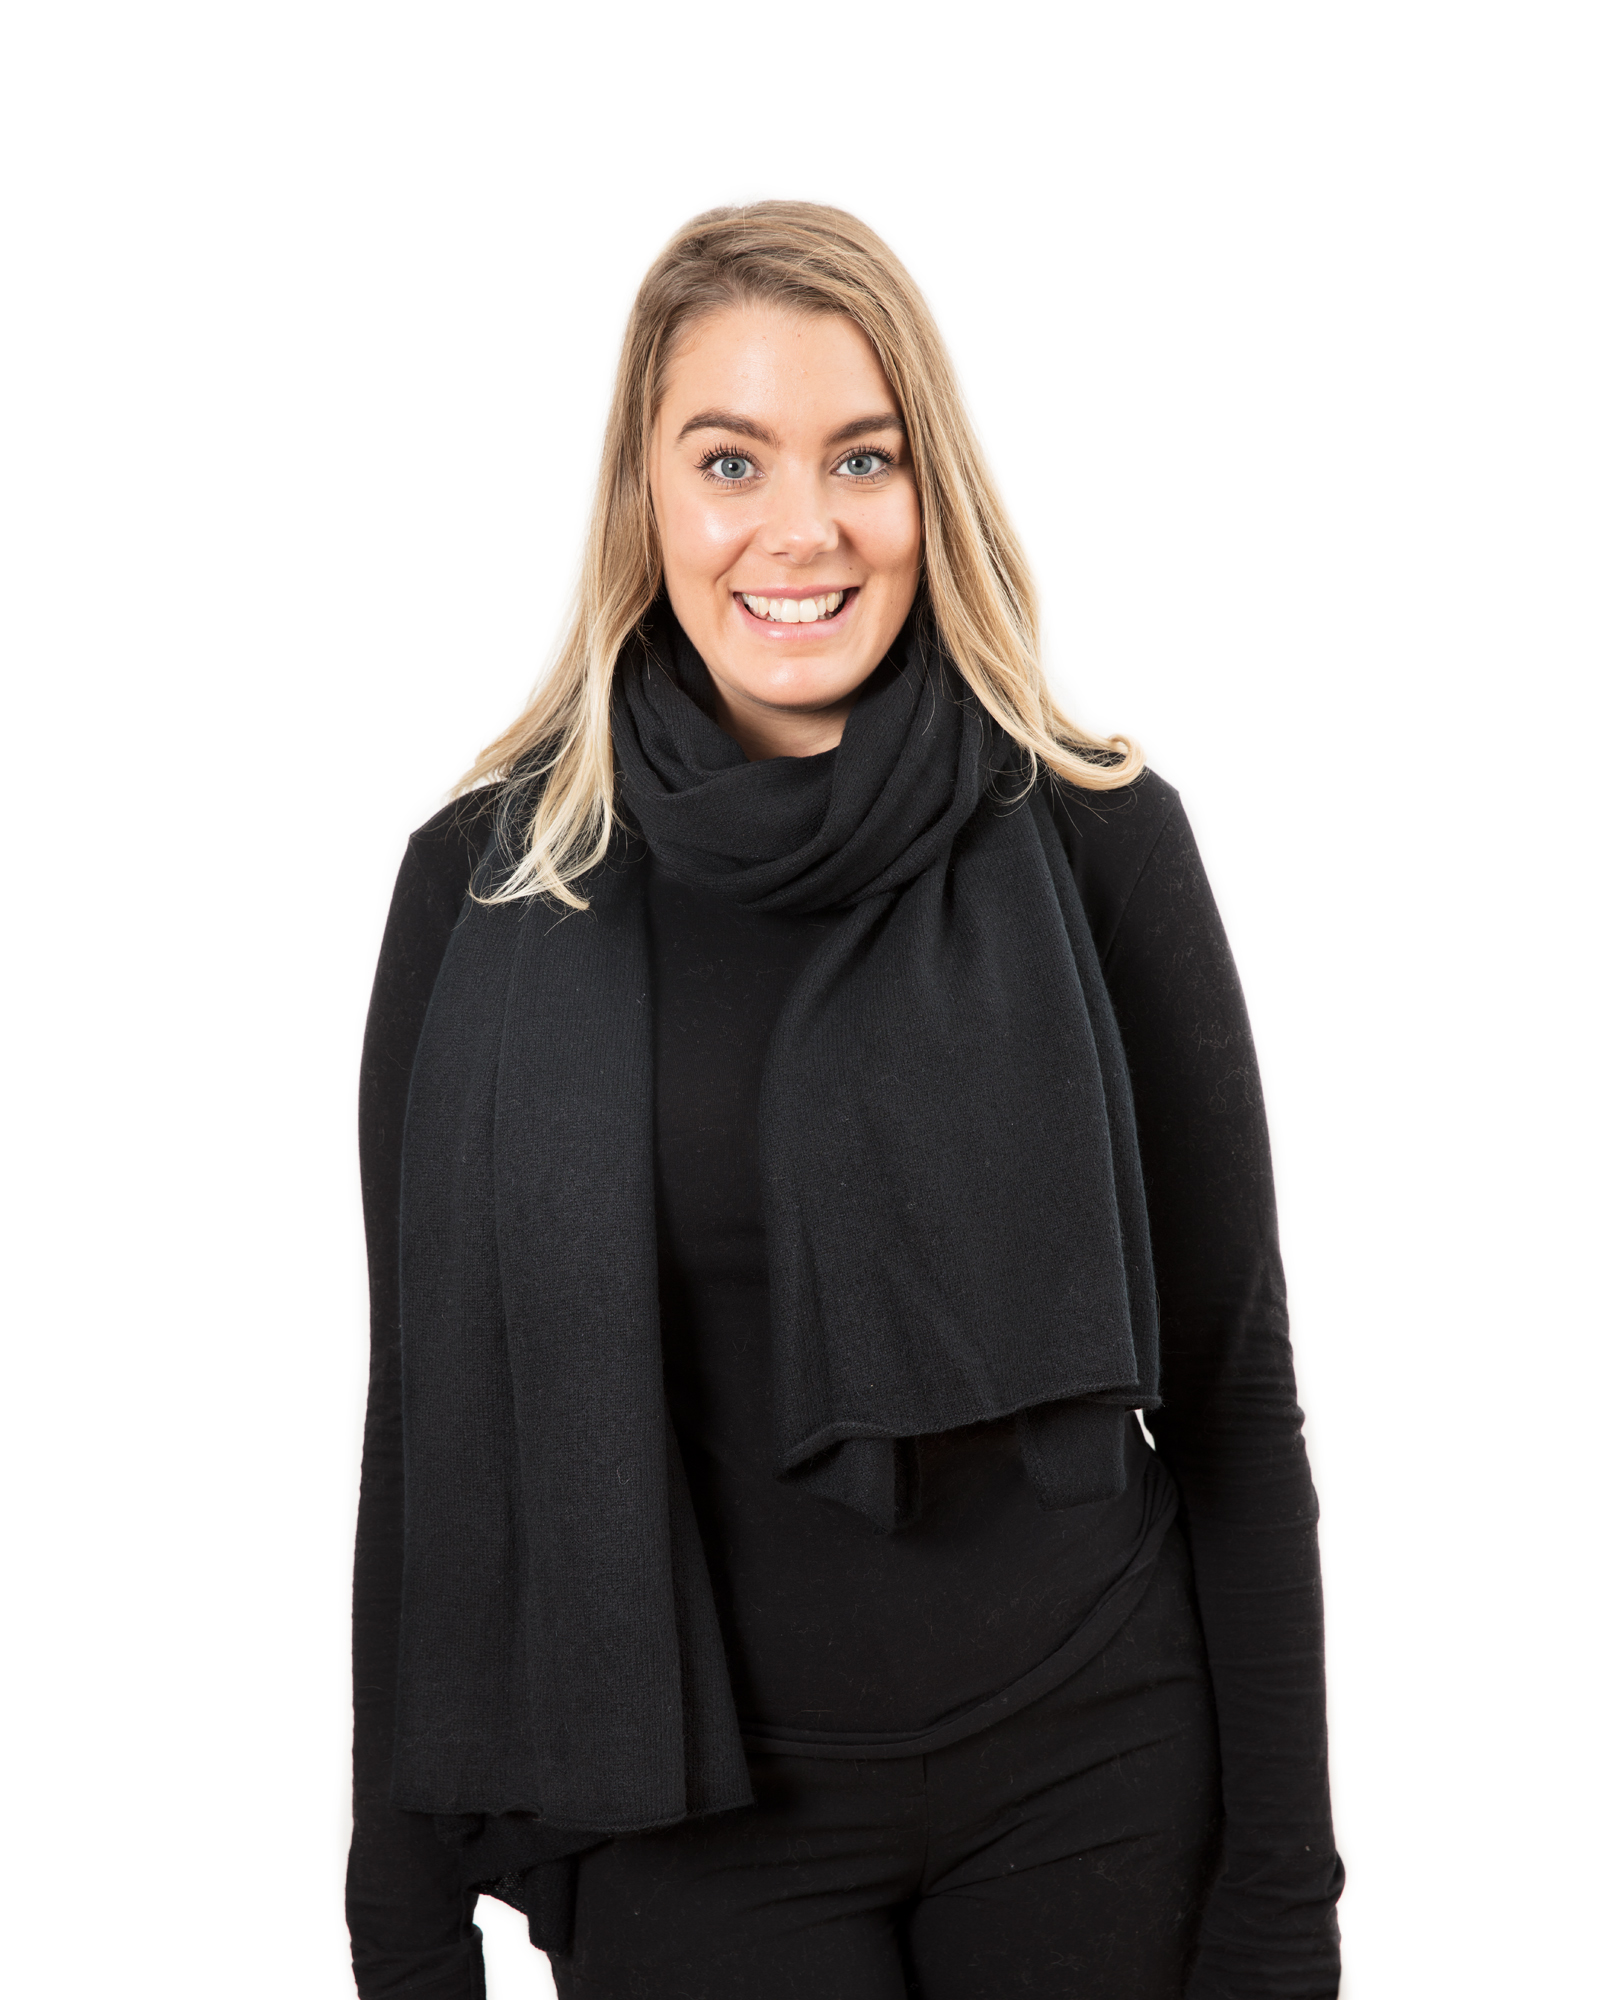 Lisa Yang Stor Sjal Black 100% Cashmere - DAYSTYLE 5192bf634e468